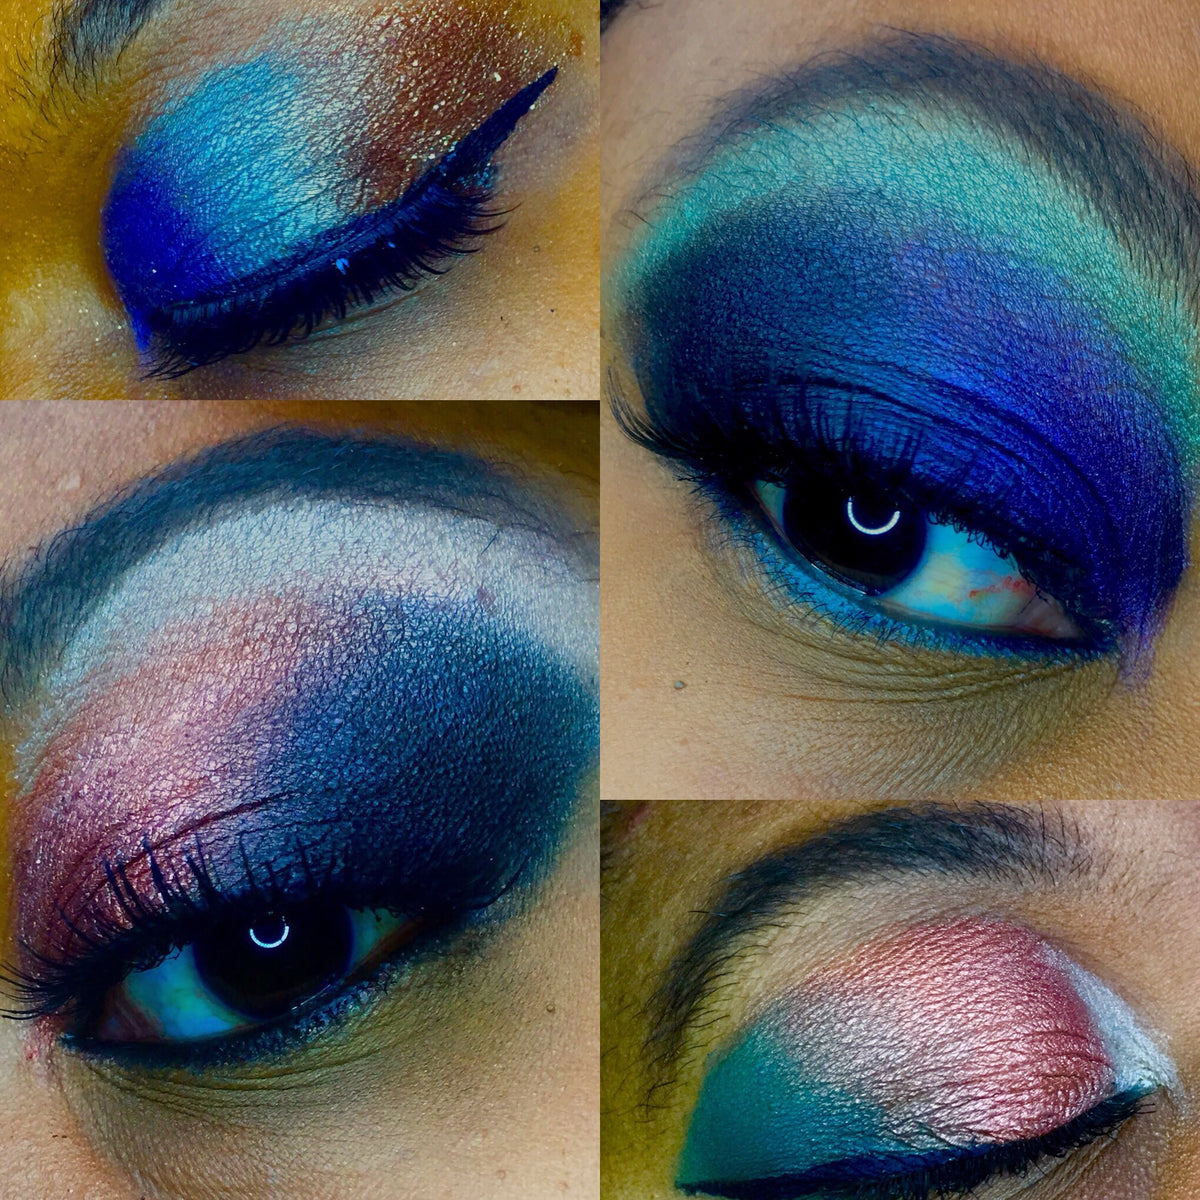 Eyeshadow looks